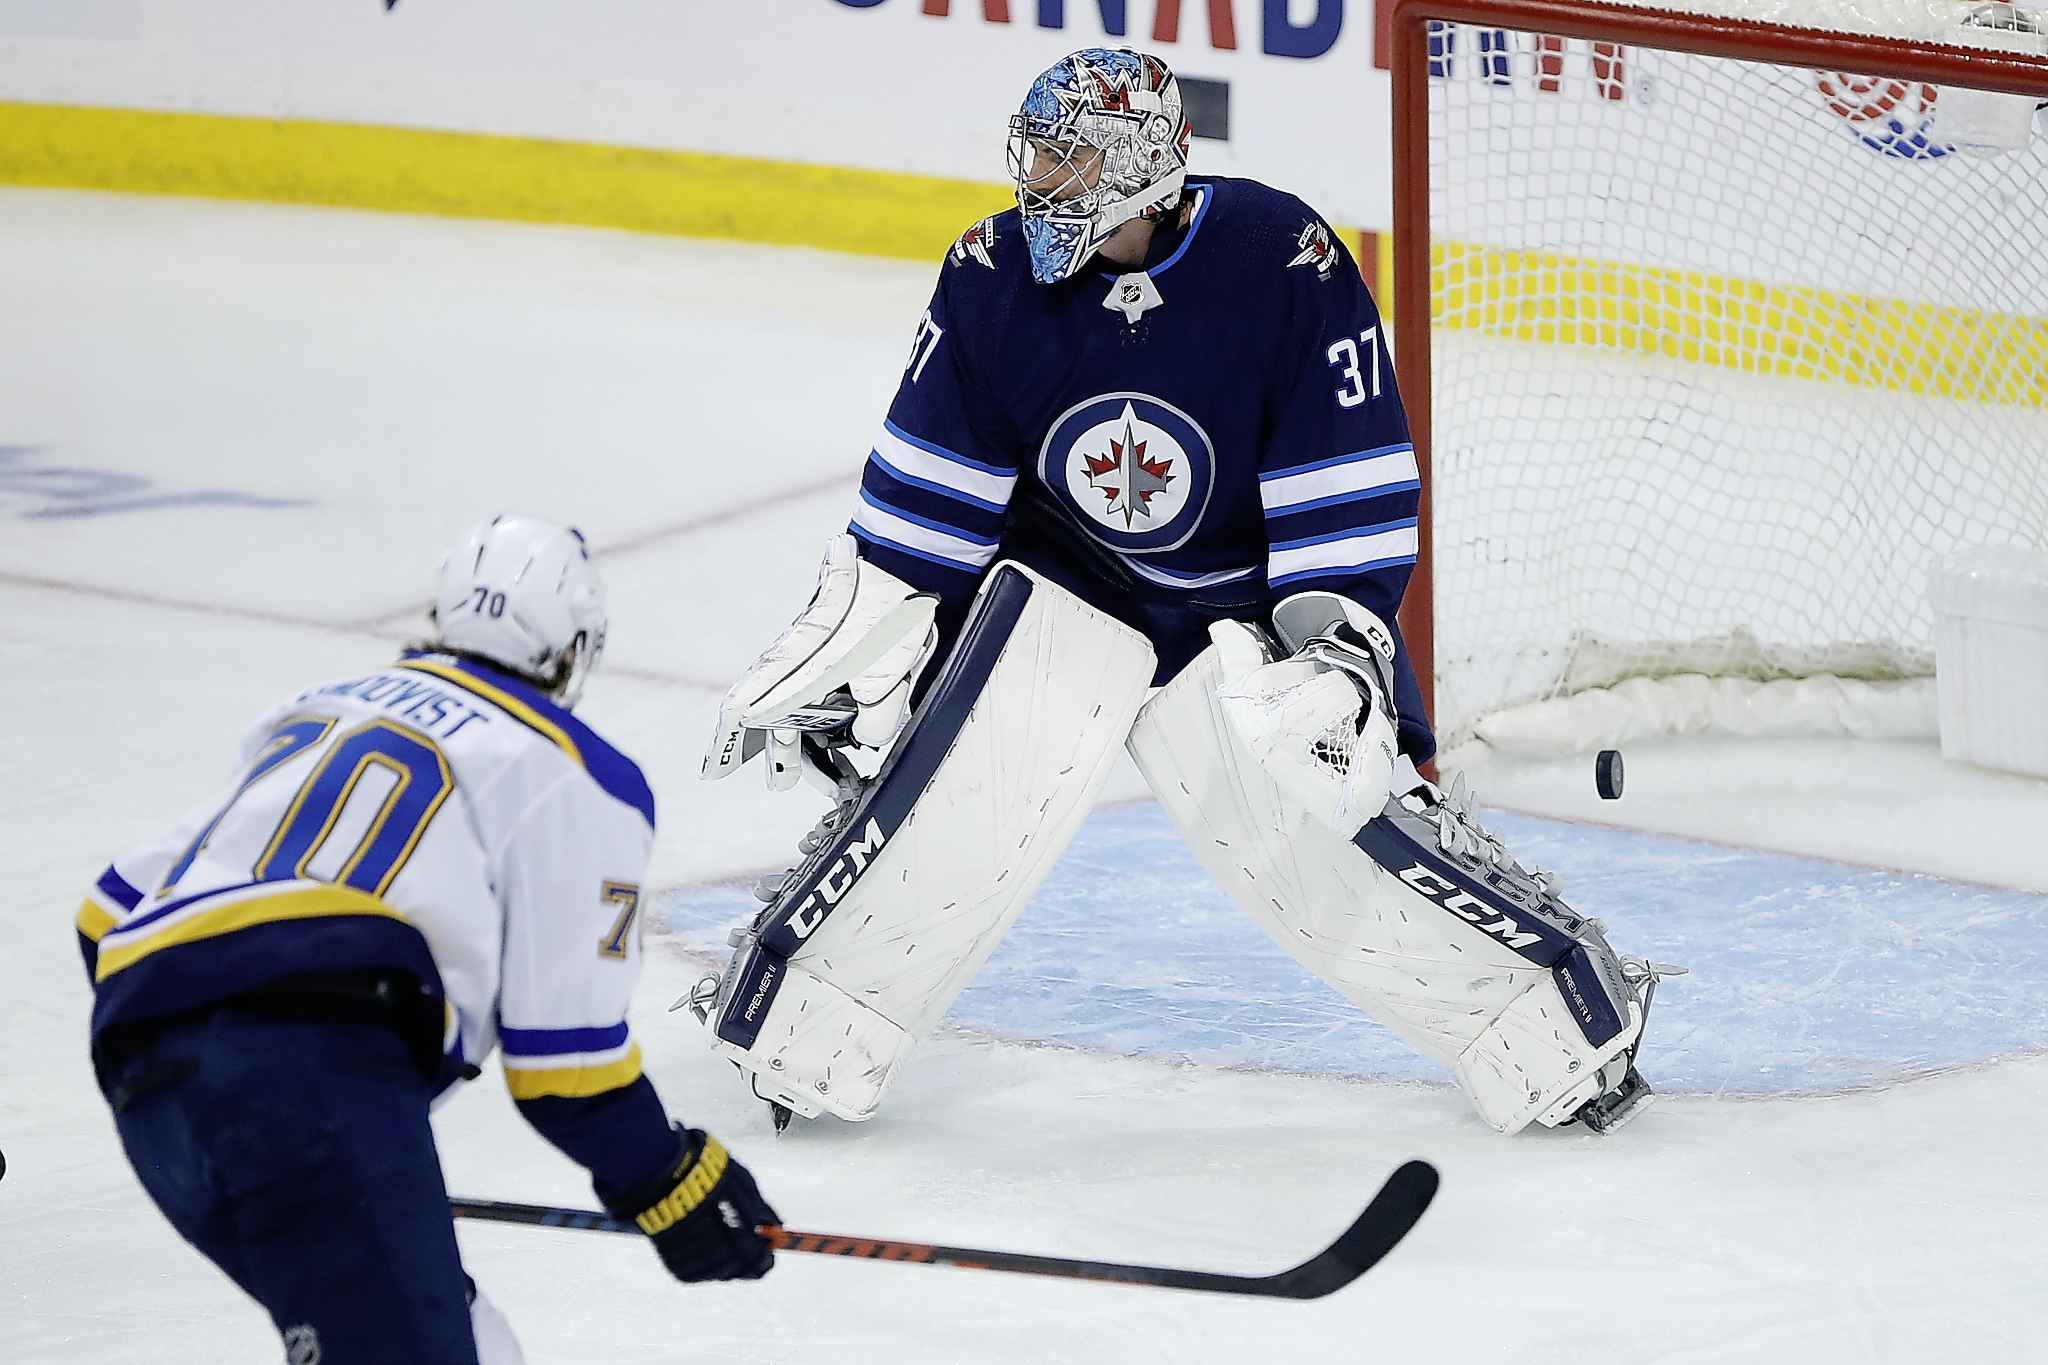 Connor Hellebuyck will get the start Sunday despite a rough outting on Friday. (John Woods / The Canadian Press)